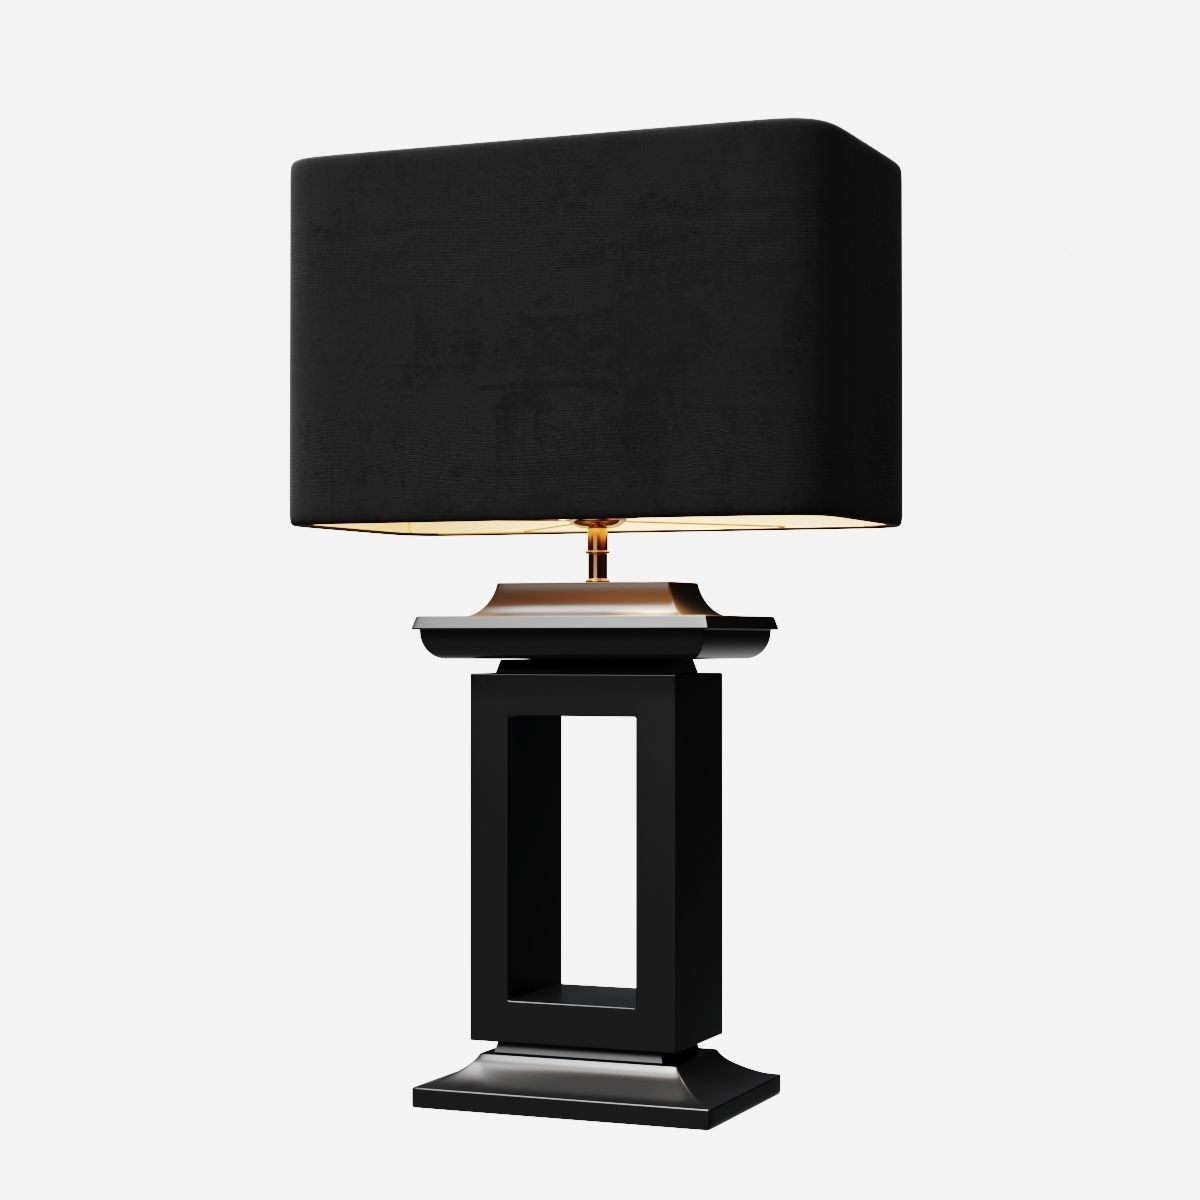 Eichholtz Table Lamp Mandarin 3d Model In 2020 Lamp 3d Model Table Lamp